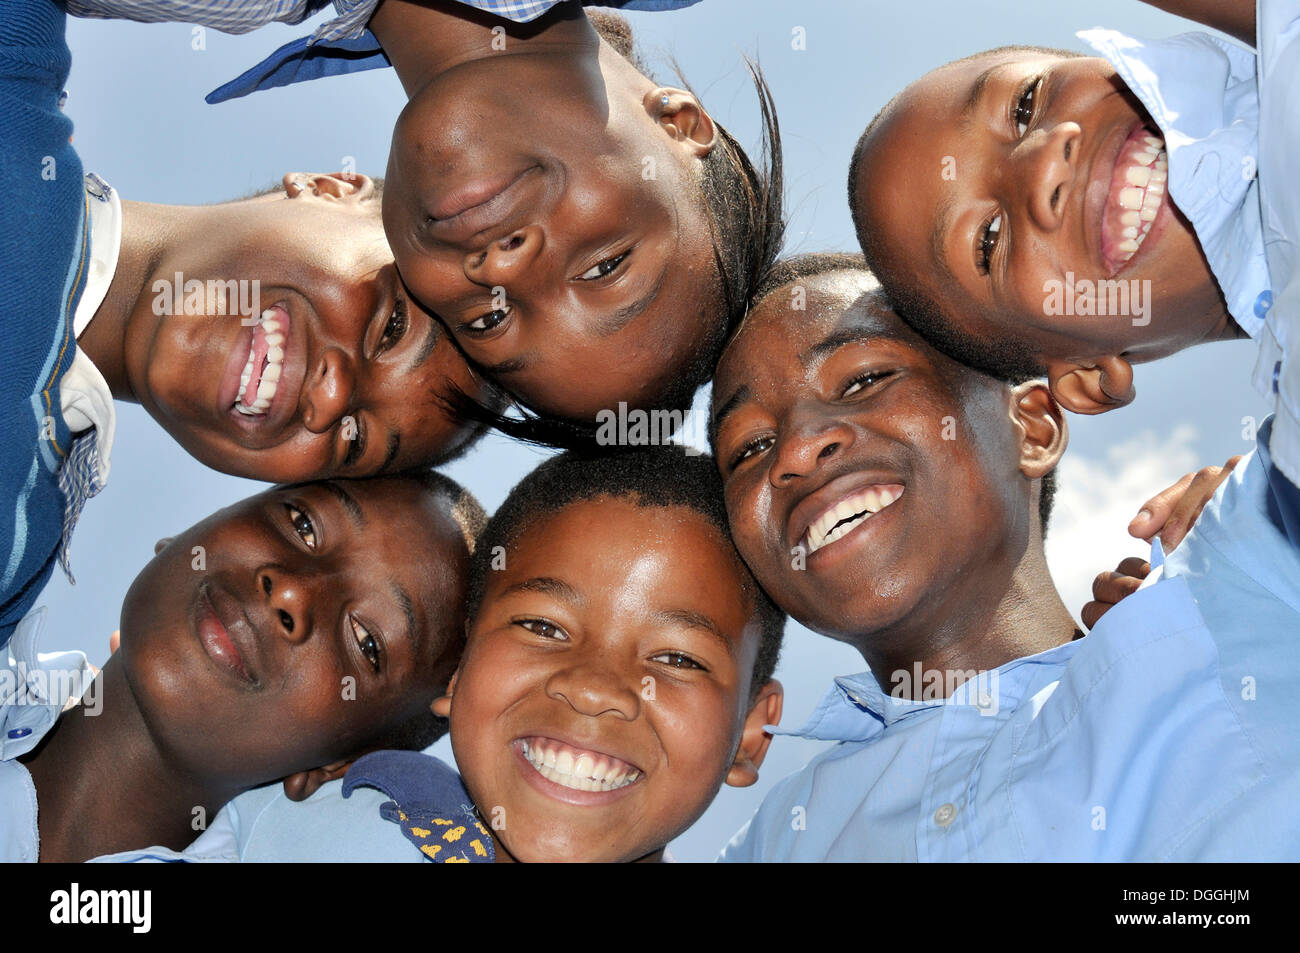 African children standing with their heads in a circle, Johannesburg, South Africa, Africa - Stock Image